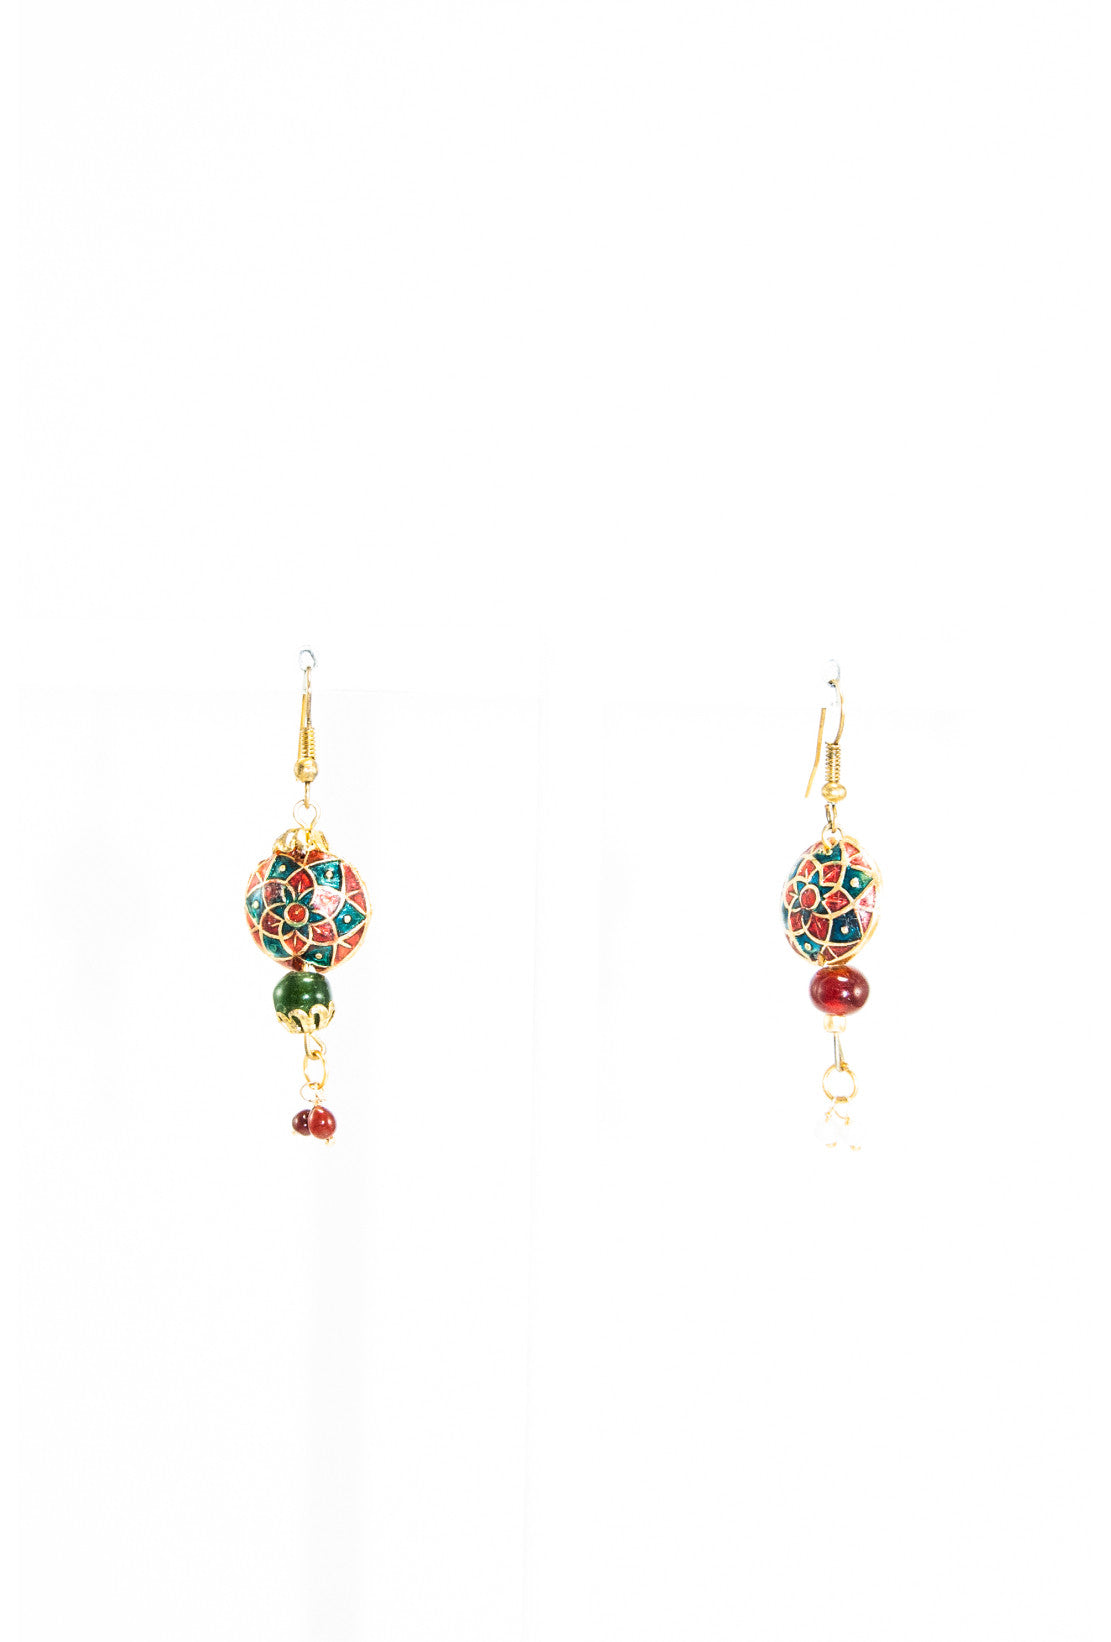 on s clearance lamba earrings new earring products sale sold shikha wire work